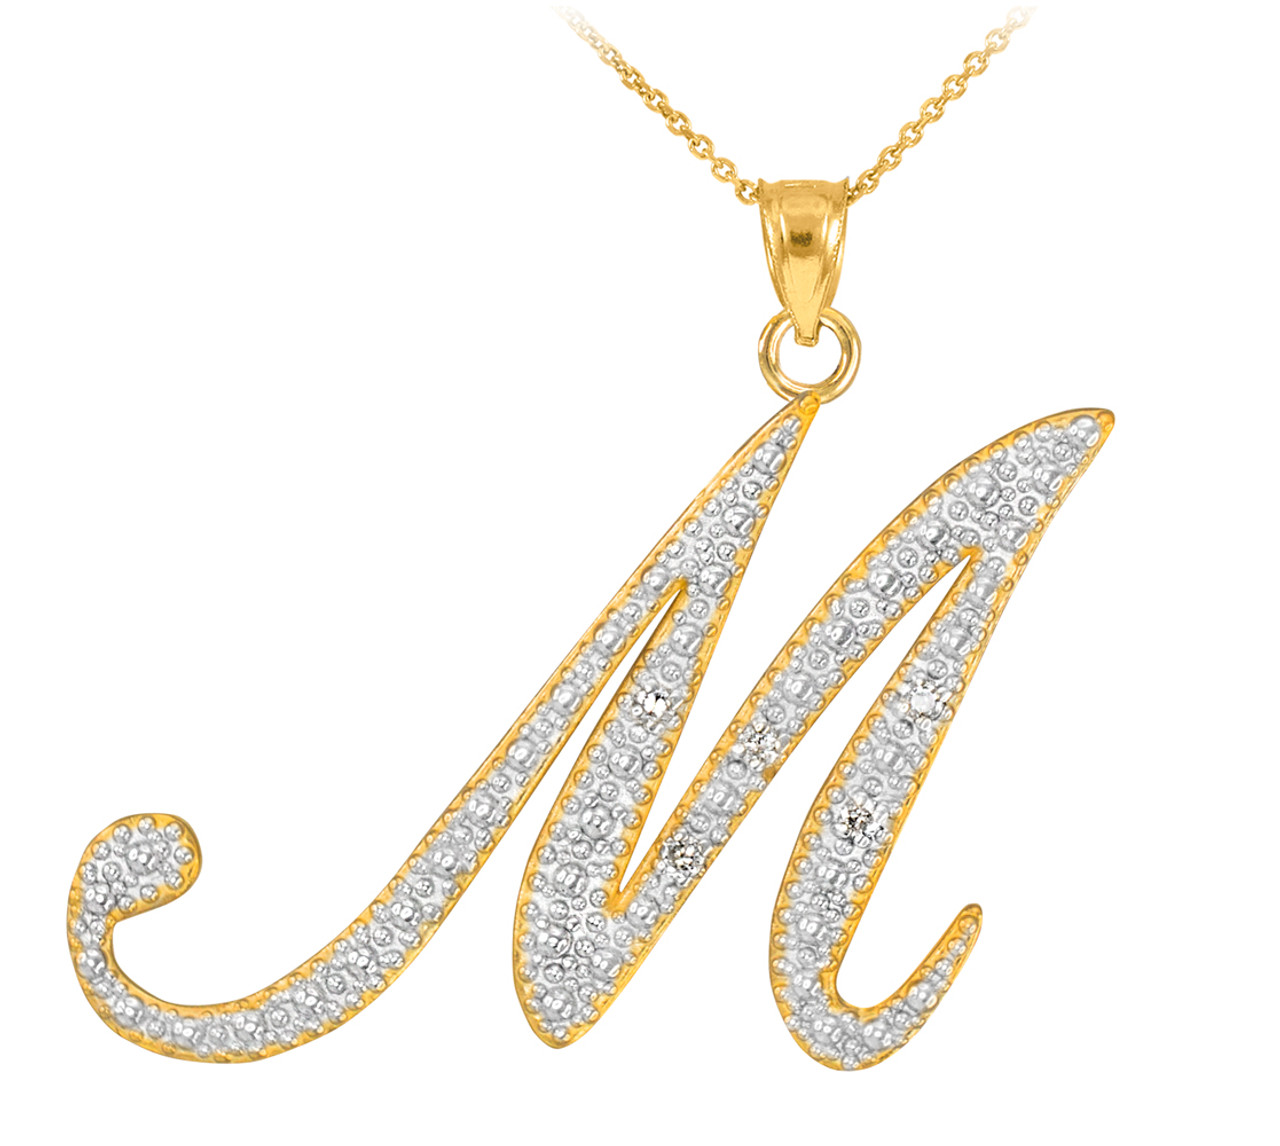 gold watches jewelry shipping overlay overstock on free initial orders product pendant accent over diamond necklace